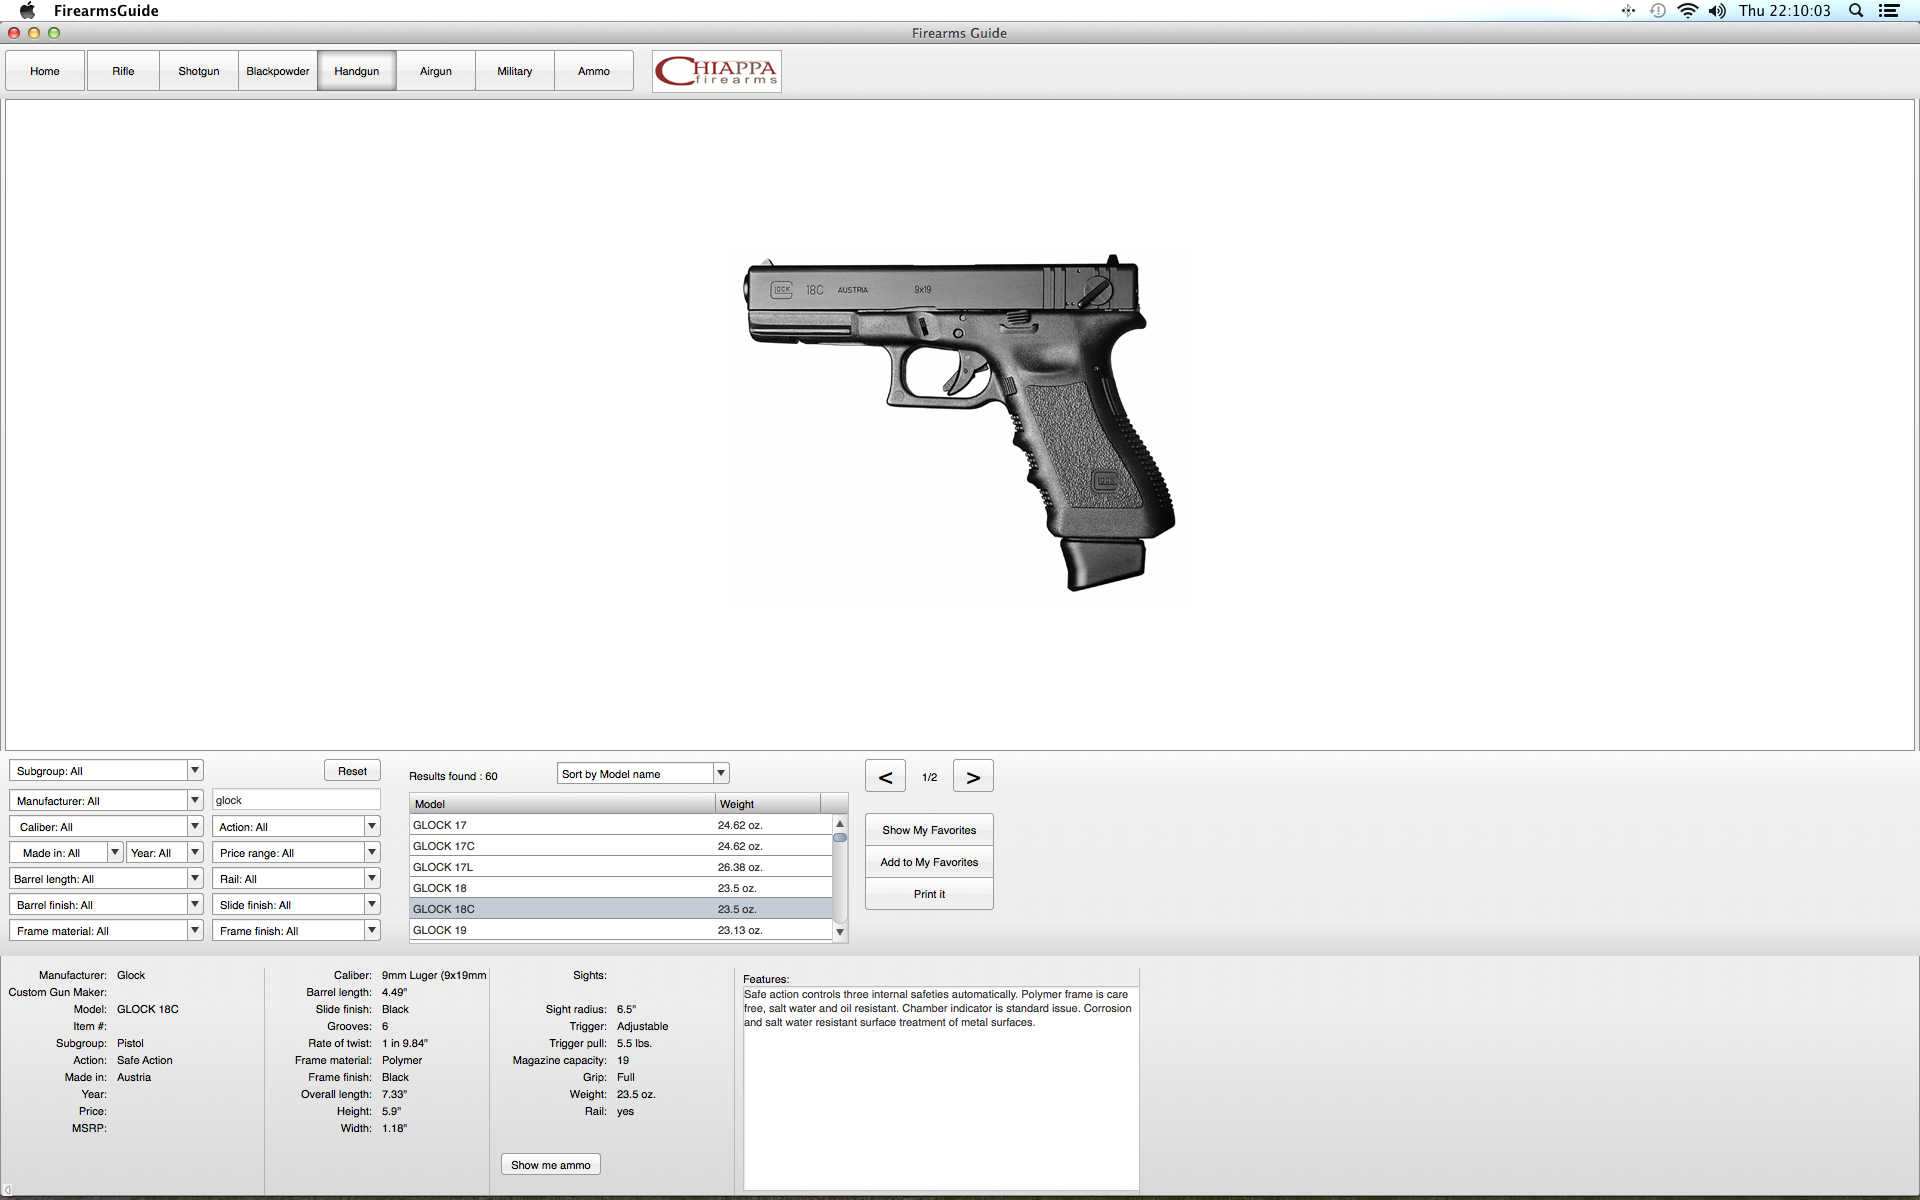 Glock 18C search result.